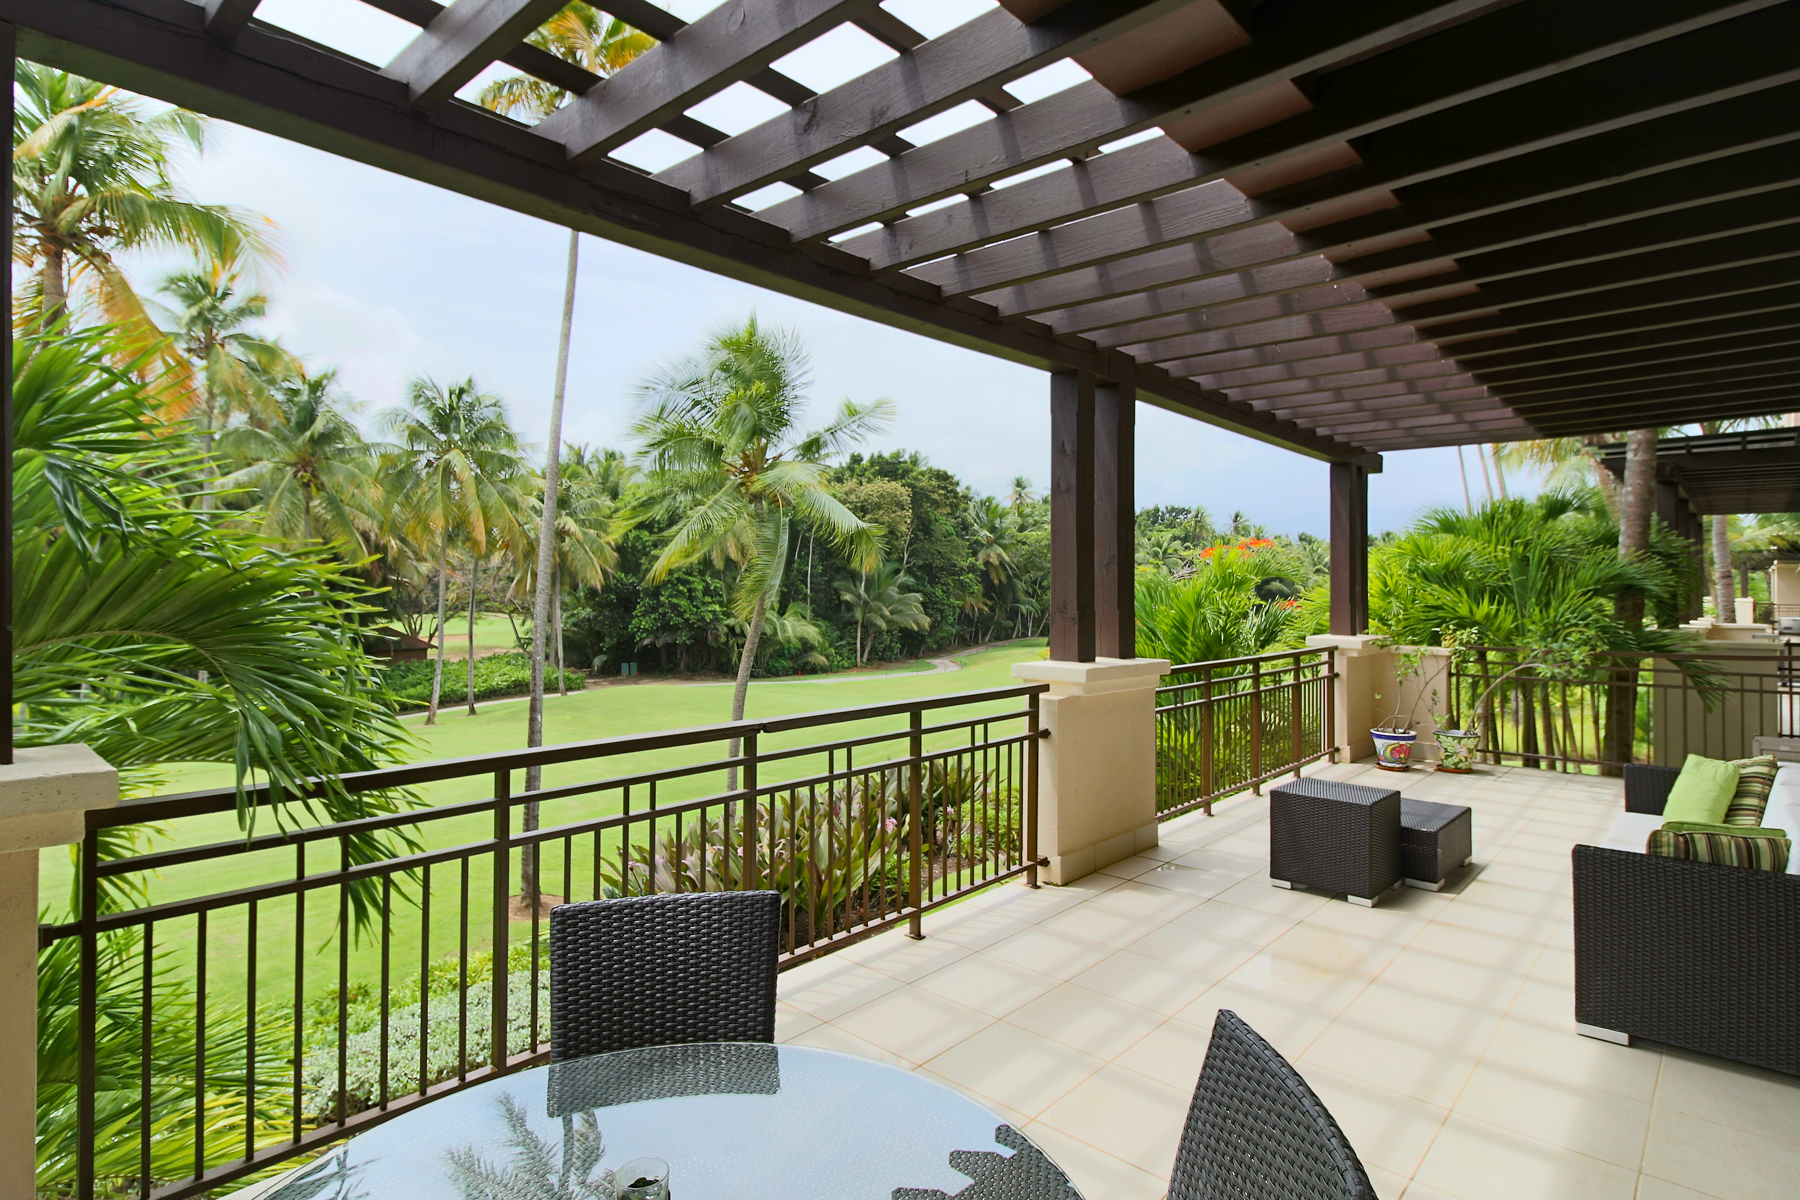 Additional photo for property listing at Fairway Villa at St Regis Bahia Beach State Rd. 187, Km. 4.2 Las Verandas Apt 3222 Bahia Beach, Puerto Rico 00745 Πουερτο Ρικο